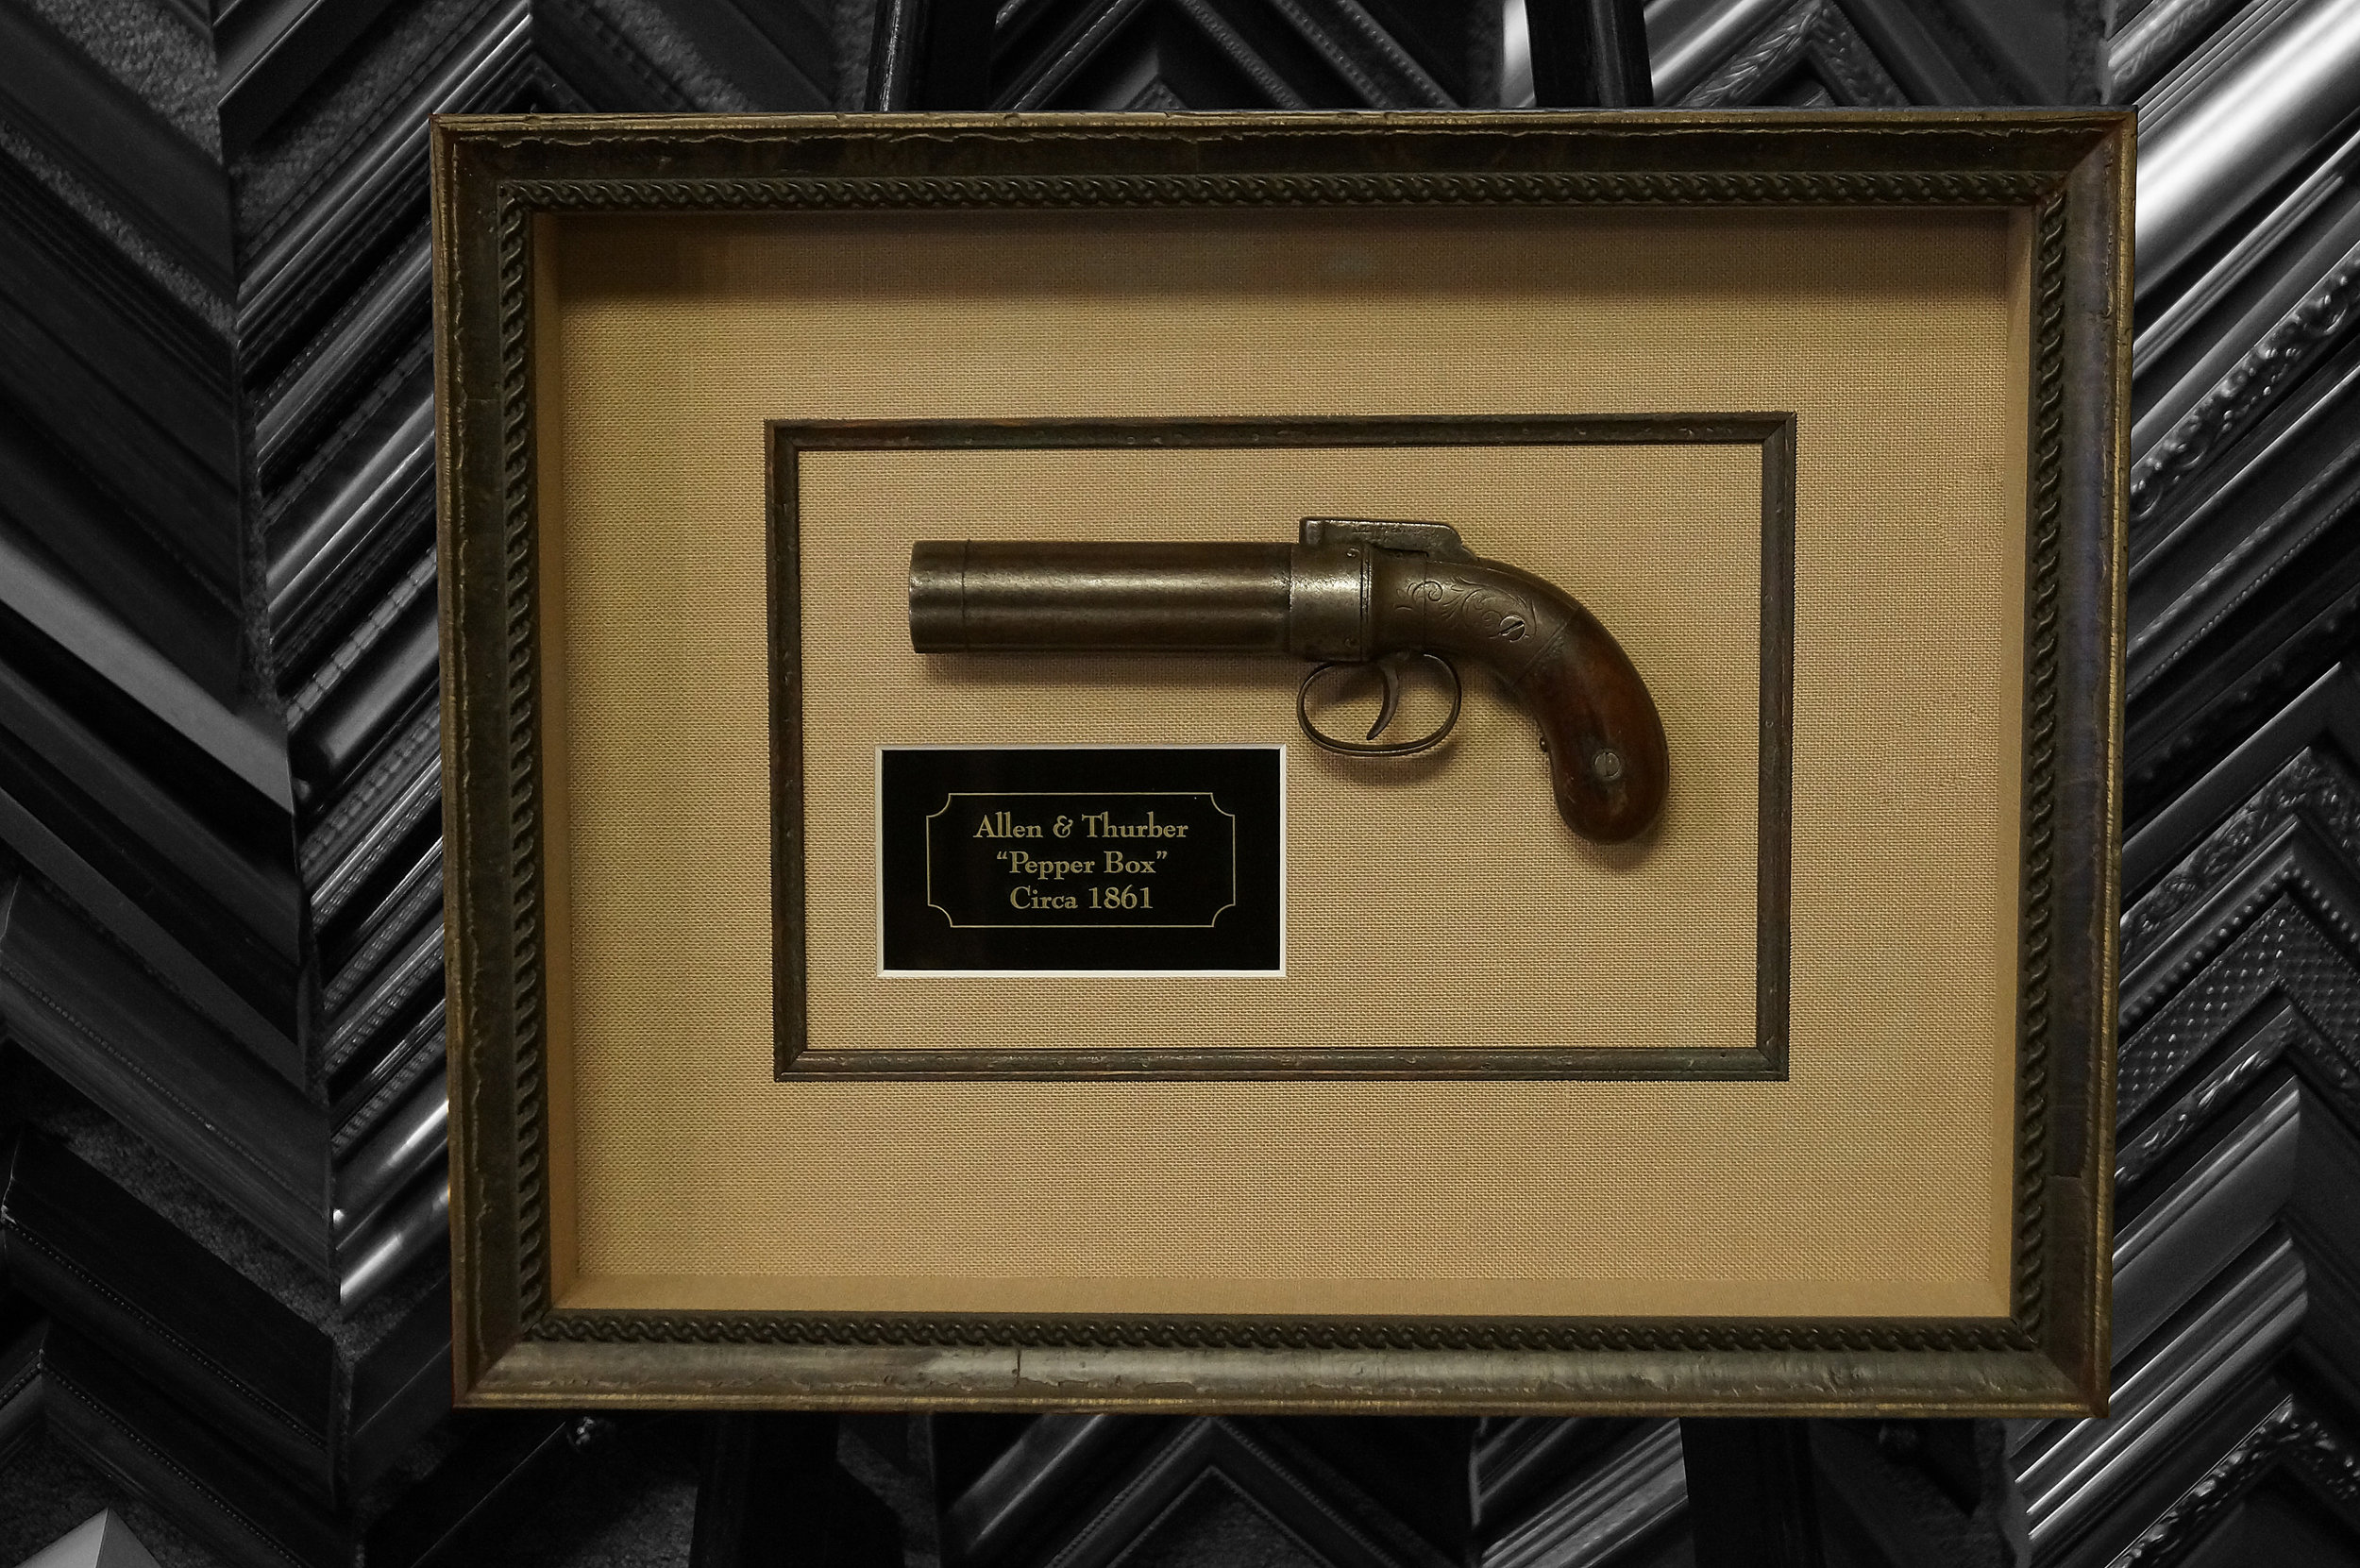 Pepper Box Gun Shadowbox.jpg